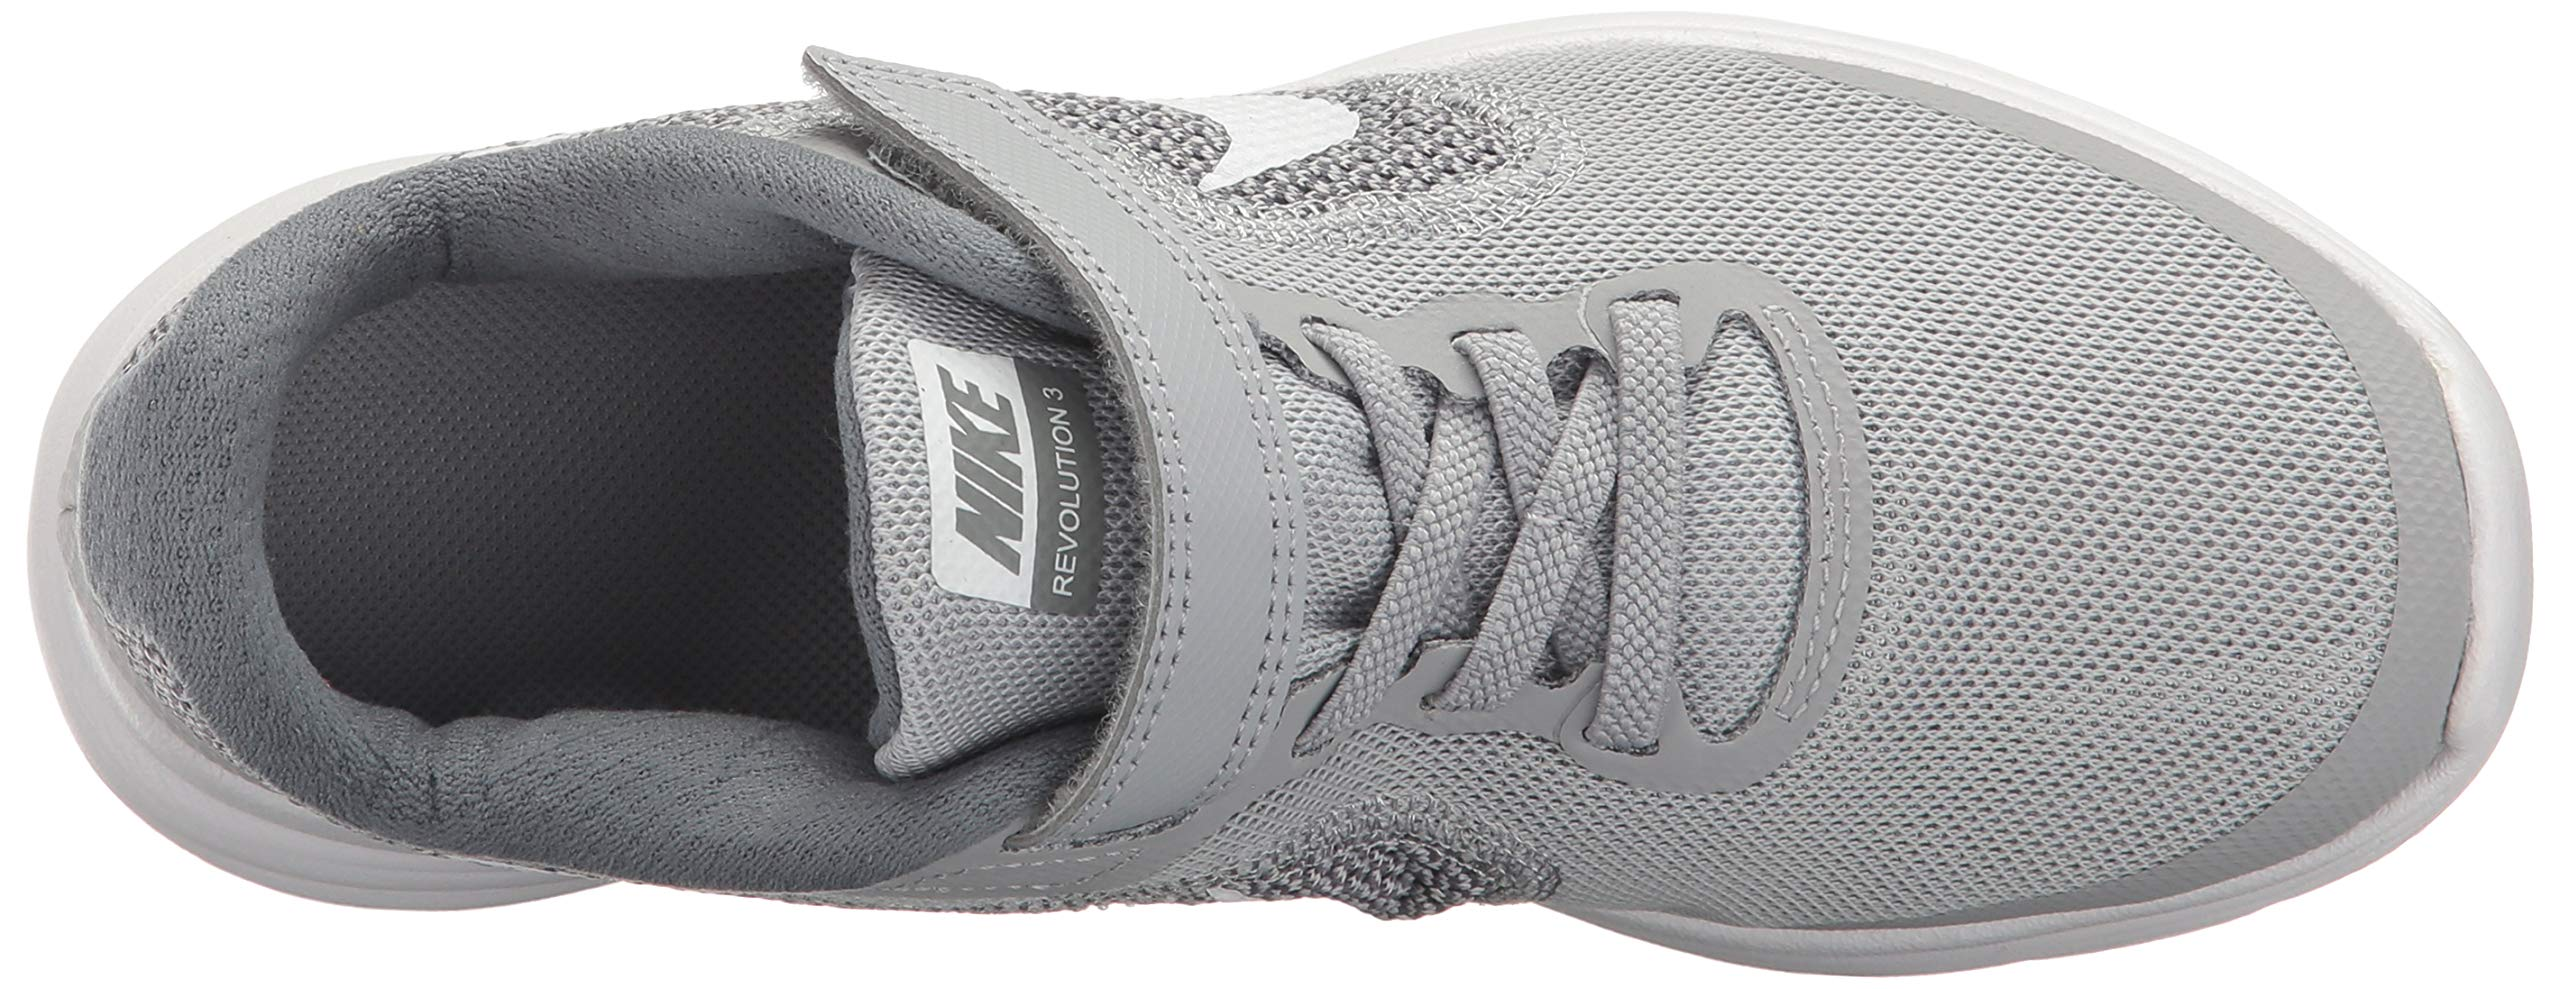 NIKE Kids' Revolution 3 (Psv) Running-Shoes, Wolf Grey/White/Cool Grey, 1 M US Little Kid by Nike (Image #7)